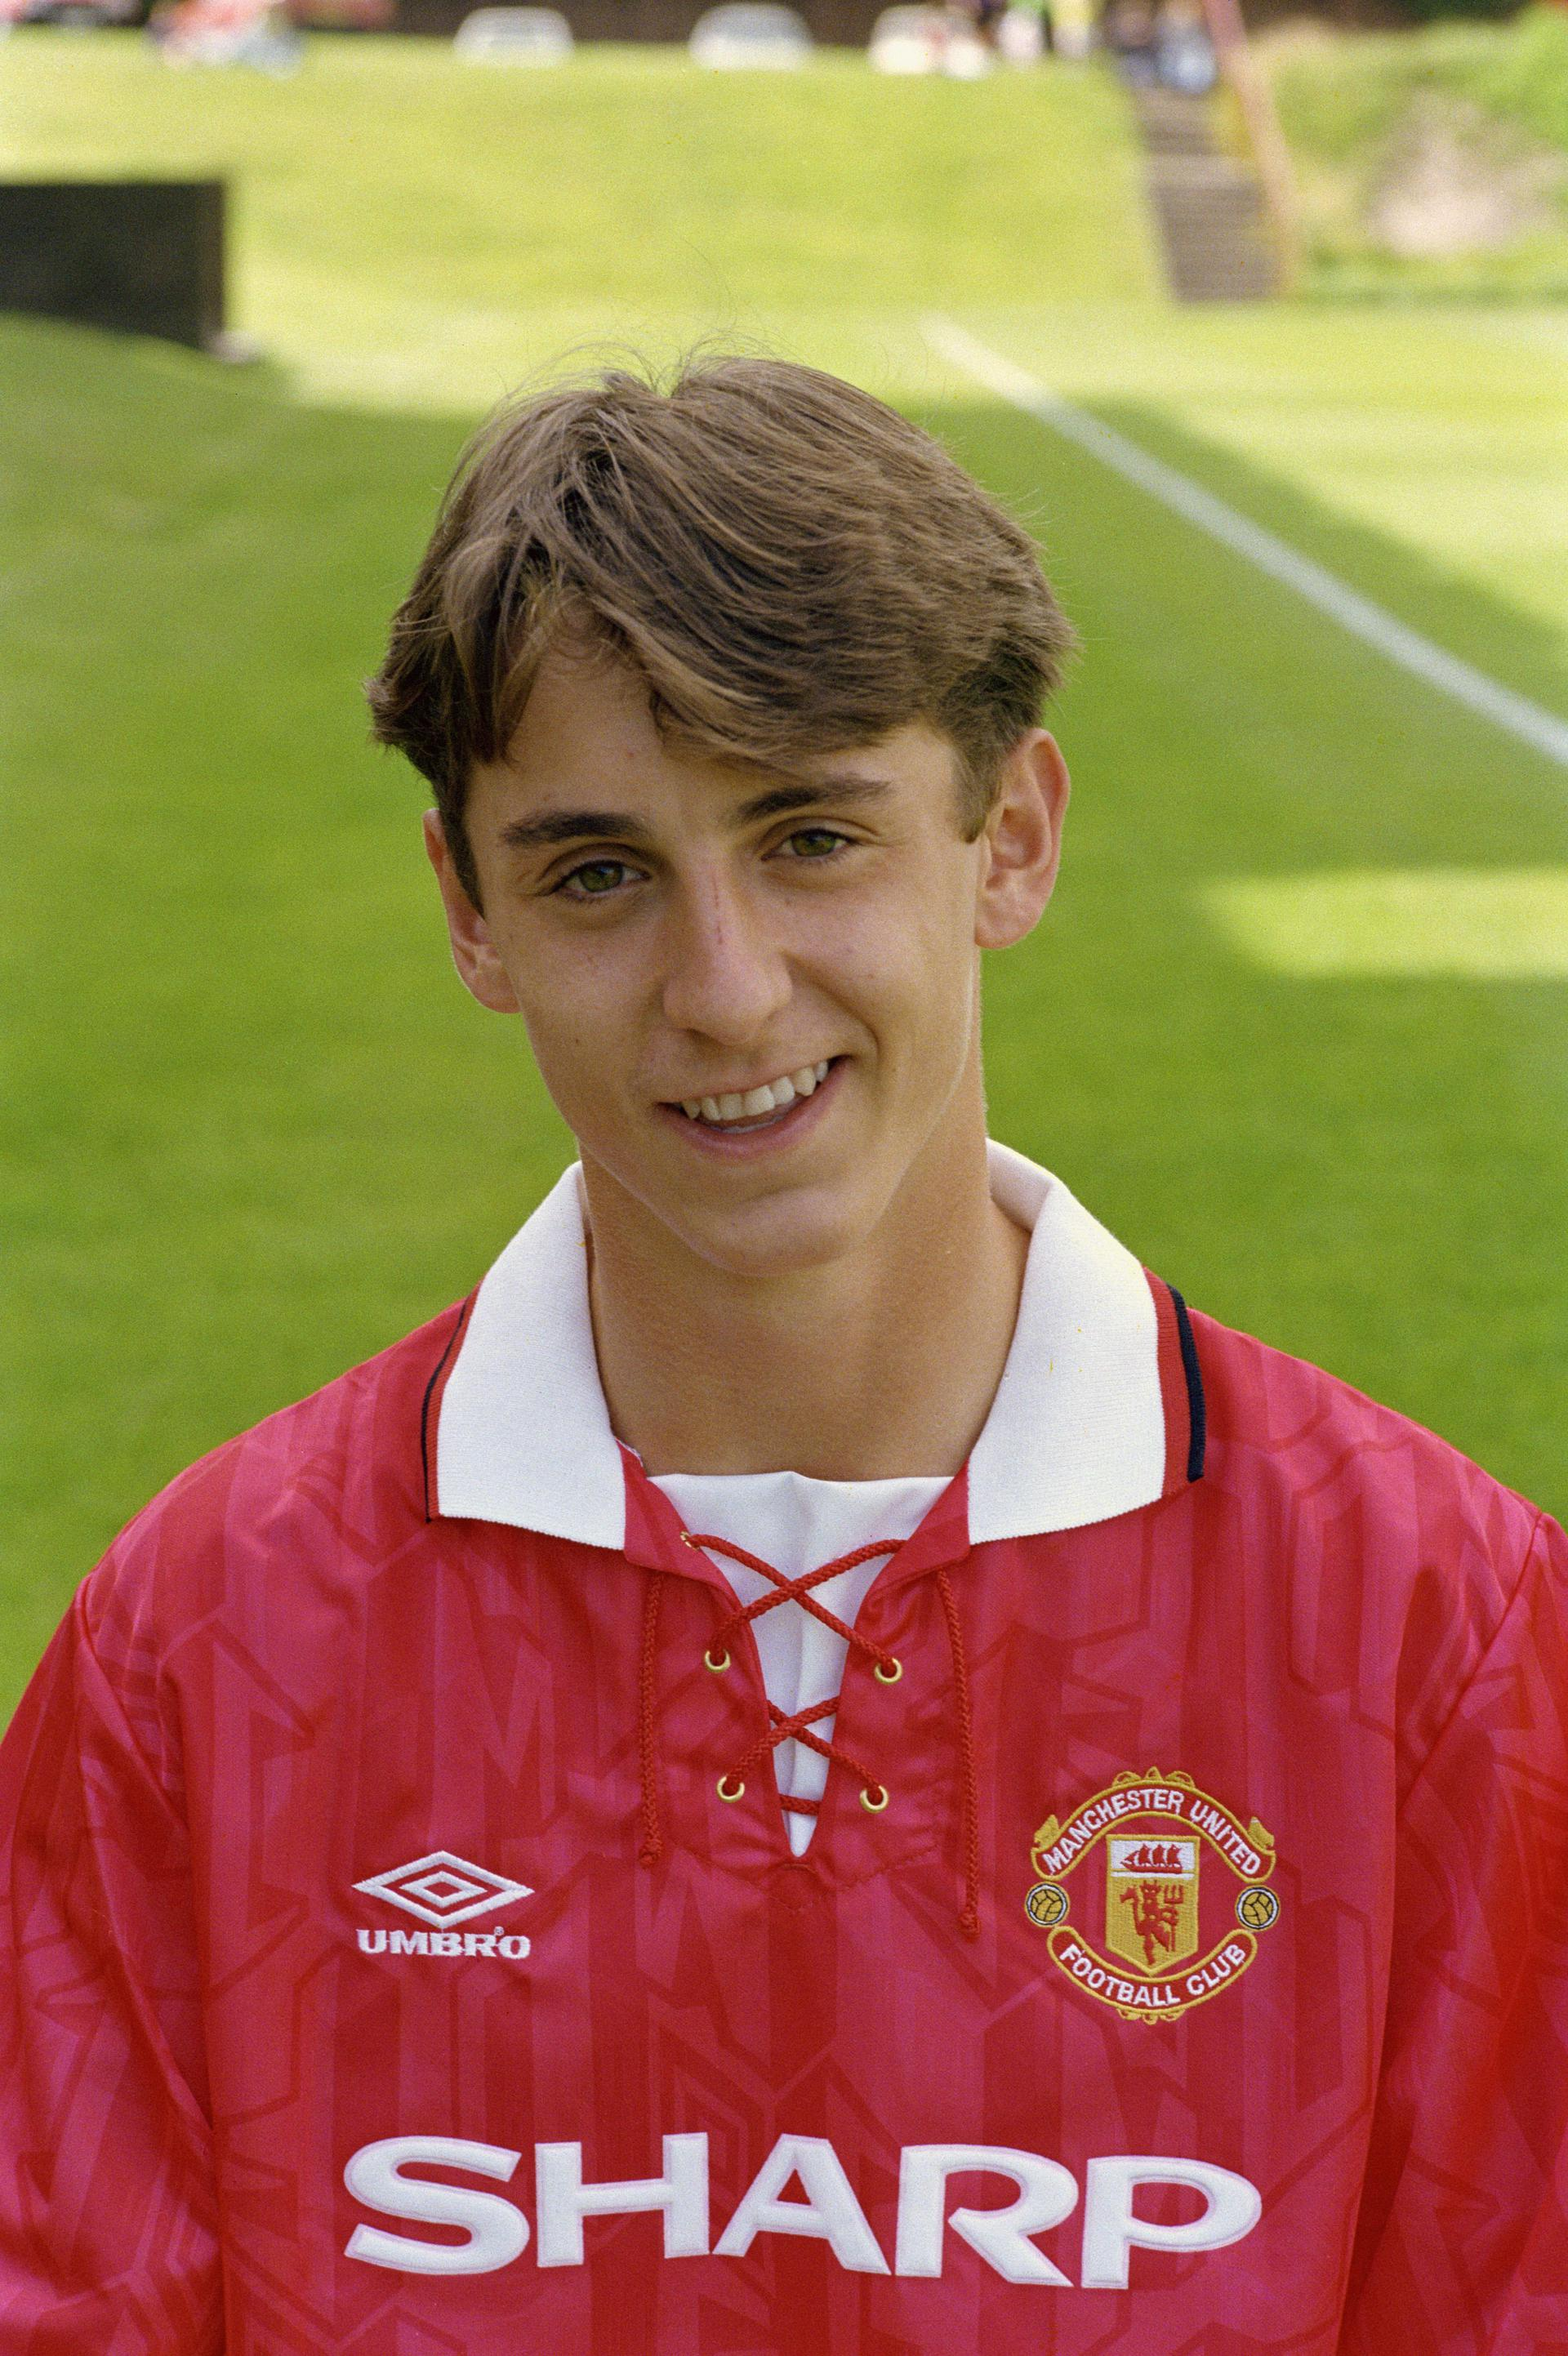 Gary Neville early years with Manchester United and England | Manchester  United